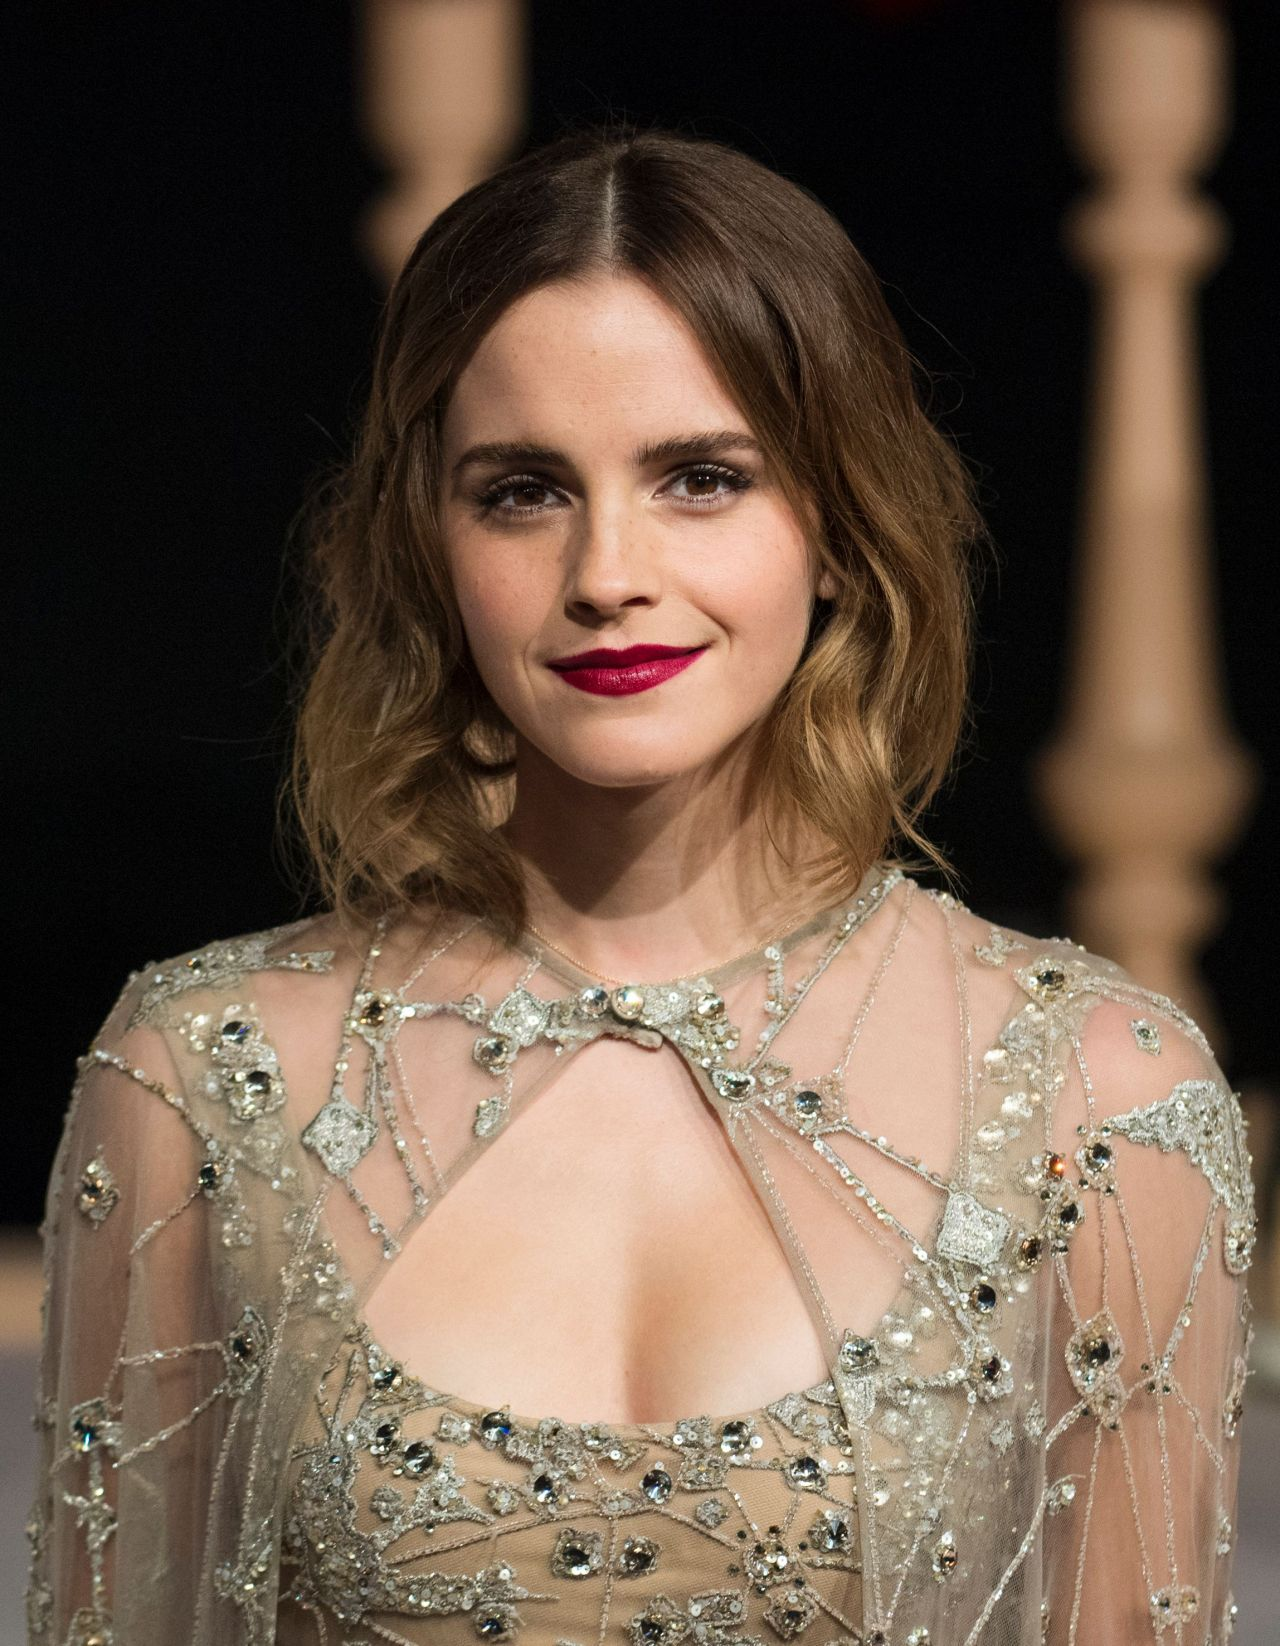 Emma Watson The Beauty And The Beast Premiere In